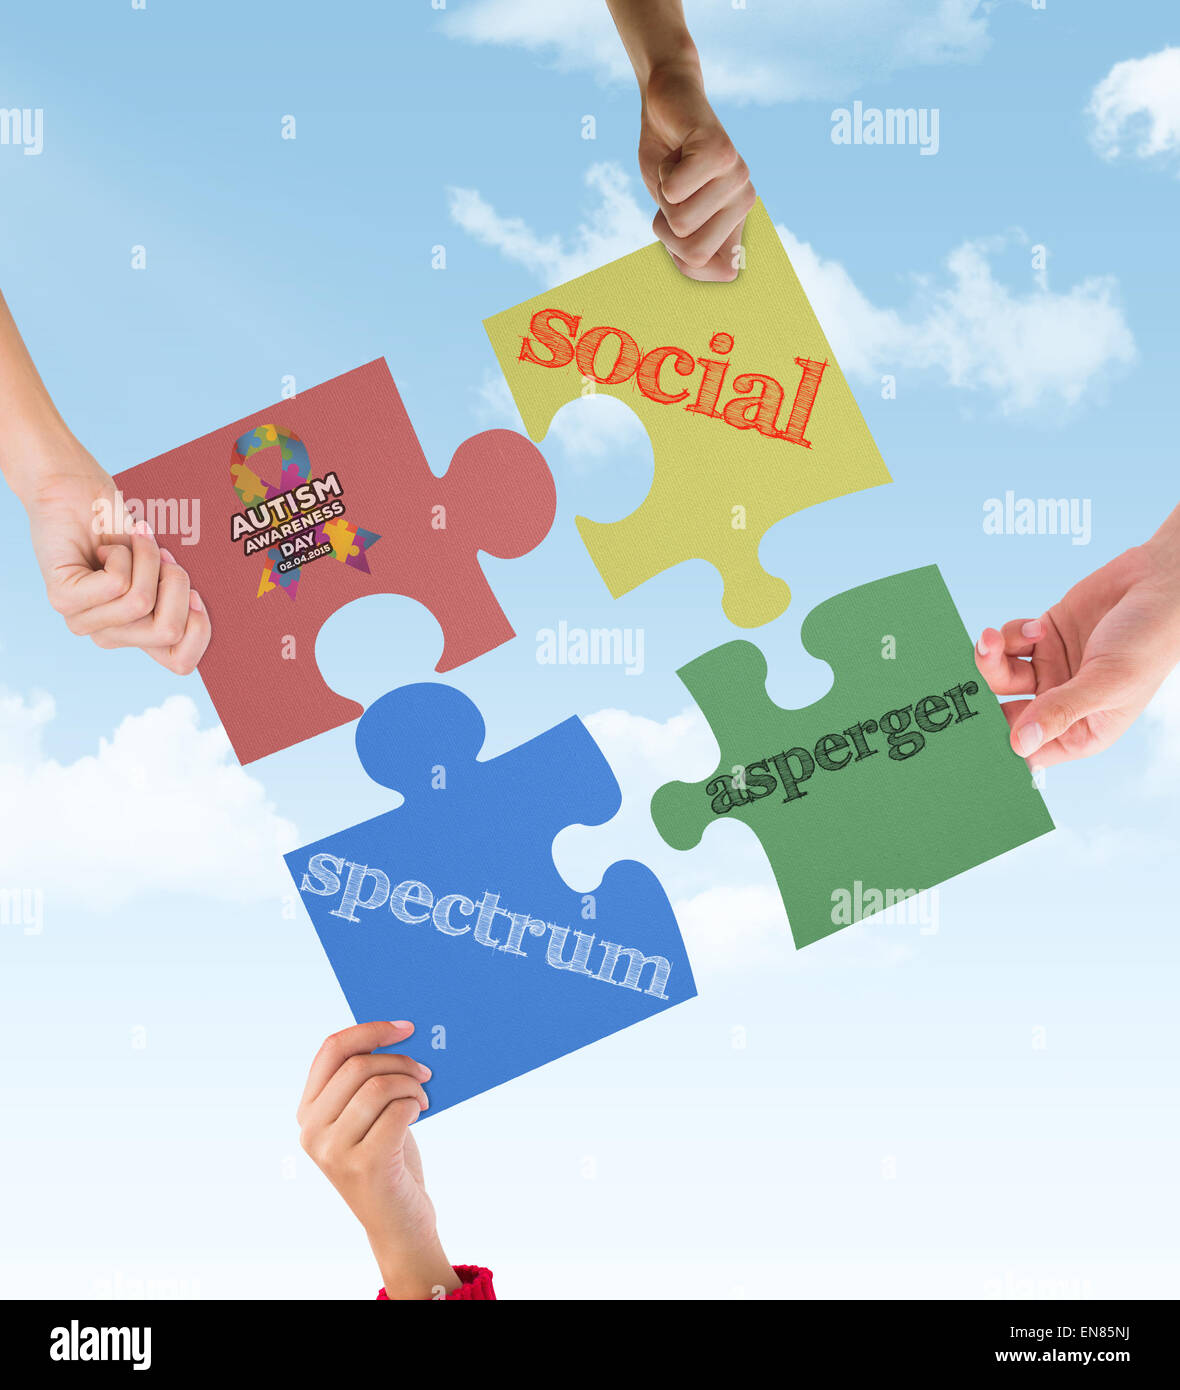 Composite image of autism awareness day - Stock Image